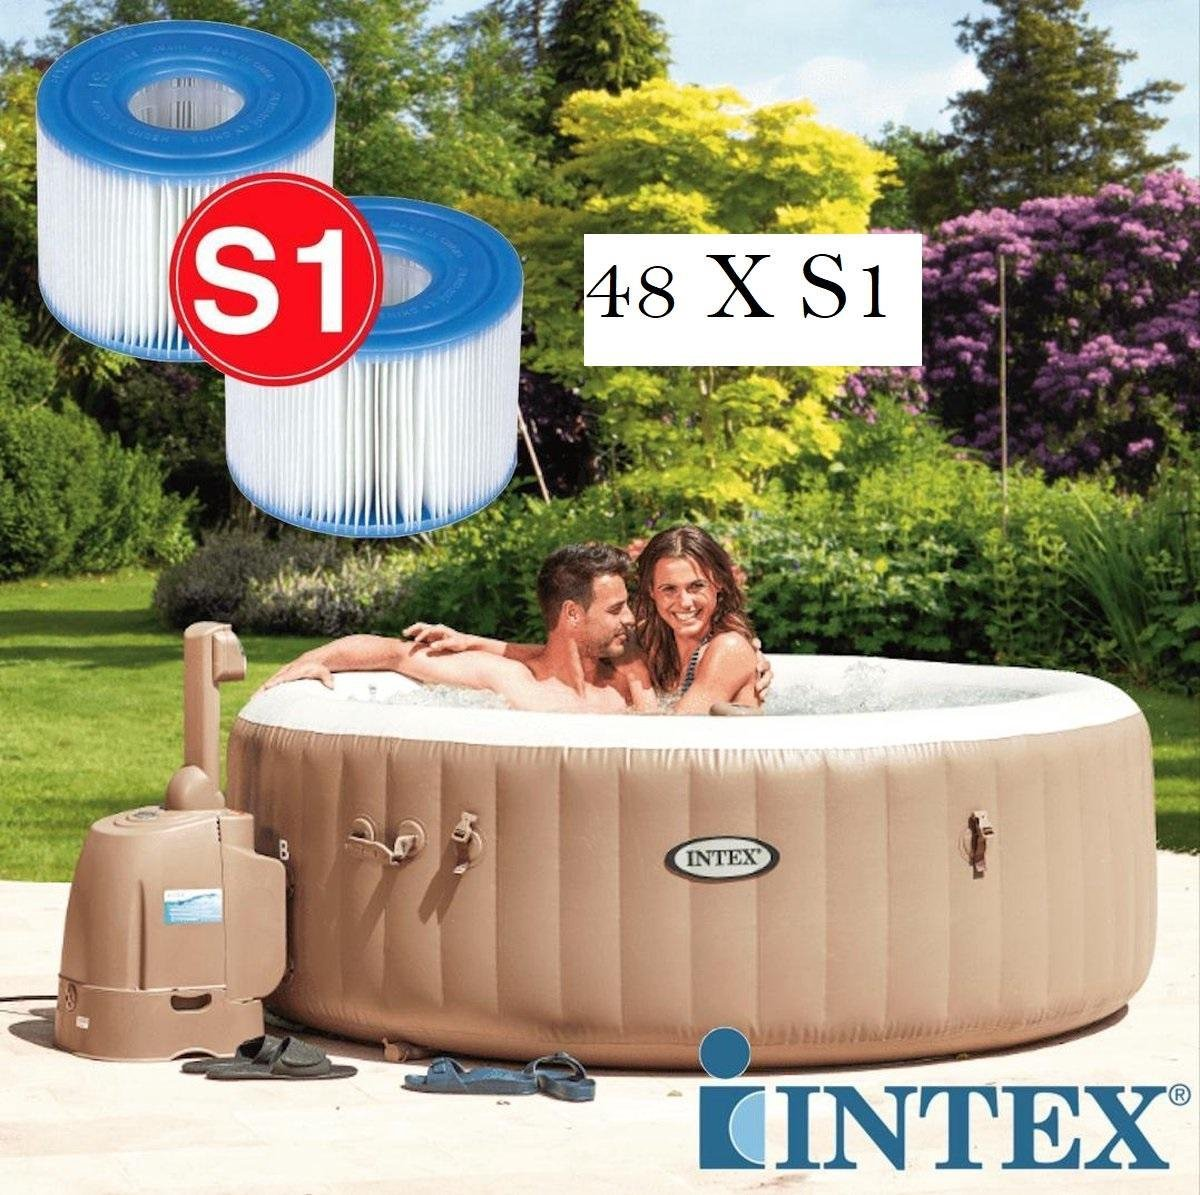 48 Intex S-1 Pure Spa Filter opblaas bubbelbad jacuzzi